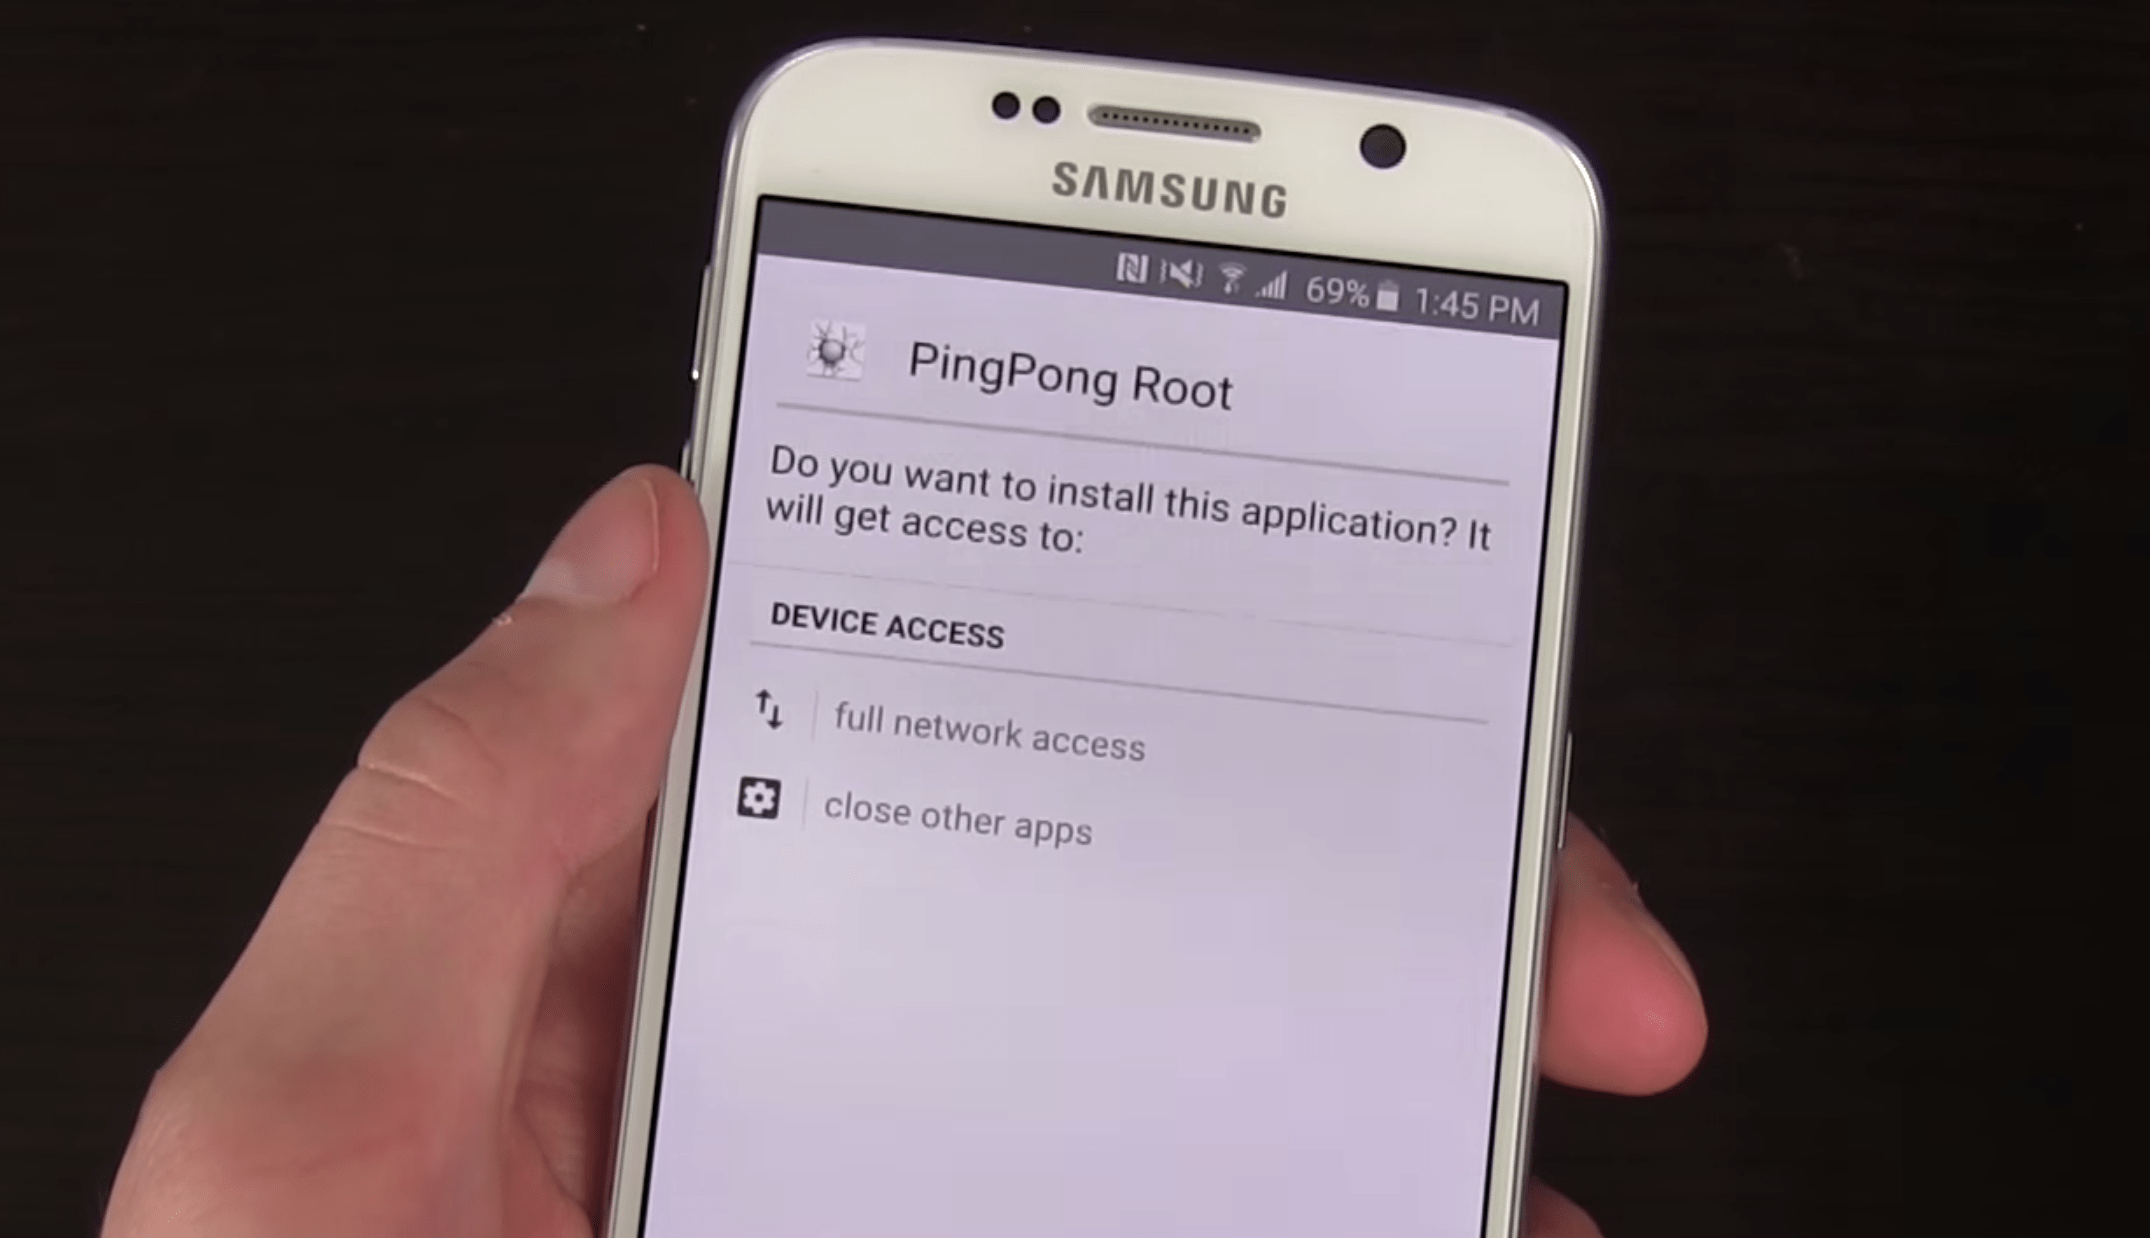 Galaxy S6 et S6 Edge : PingPong Root, l'outil ultime pour rooter son appareil ?